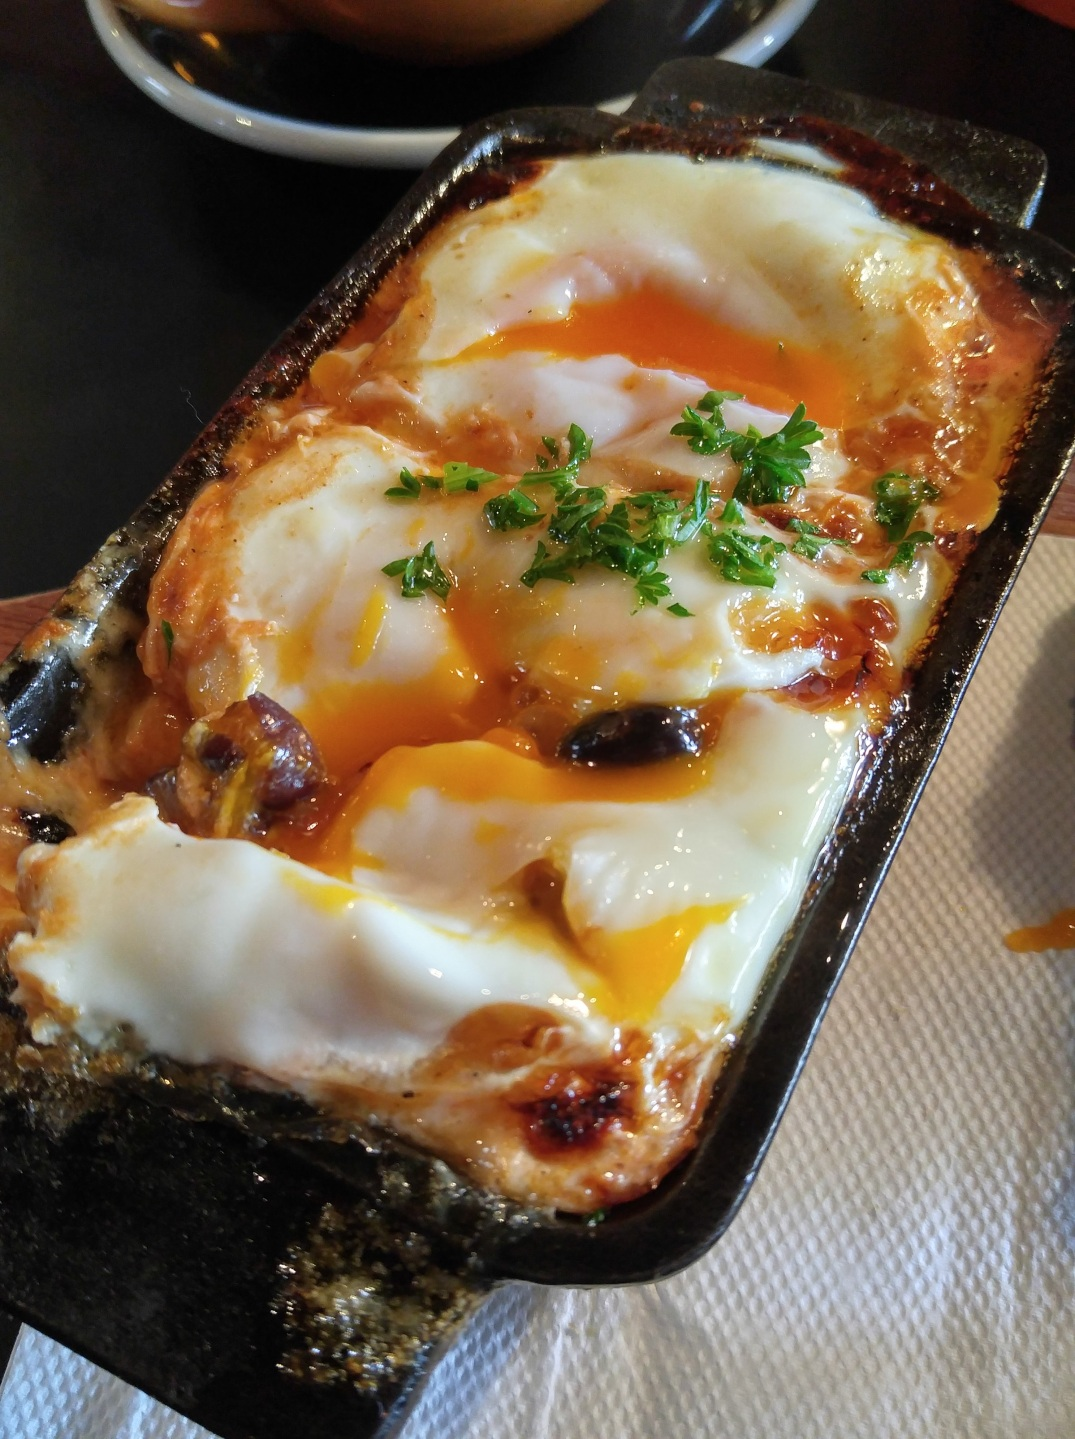 Baked Spanish Eggs at Fidel's Cafe